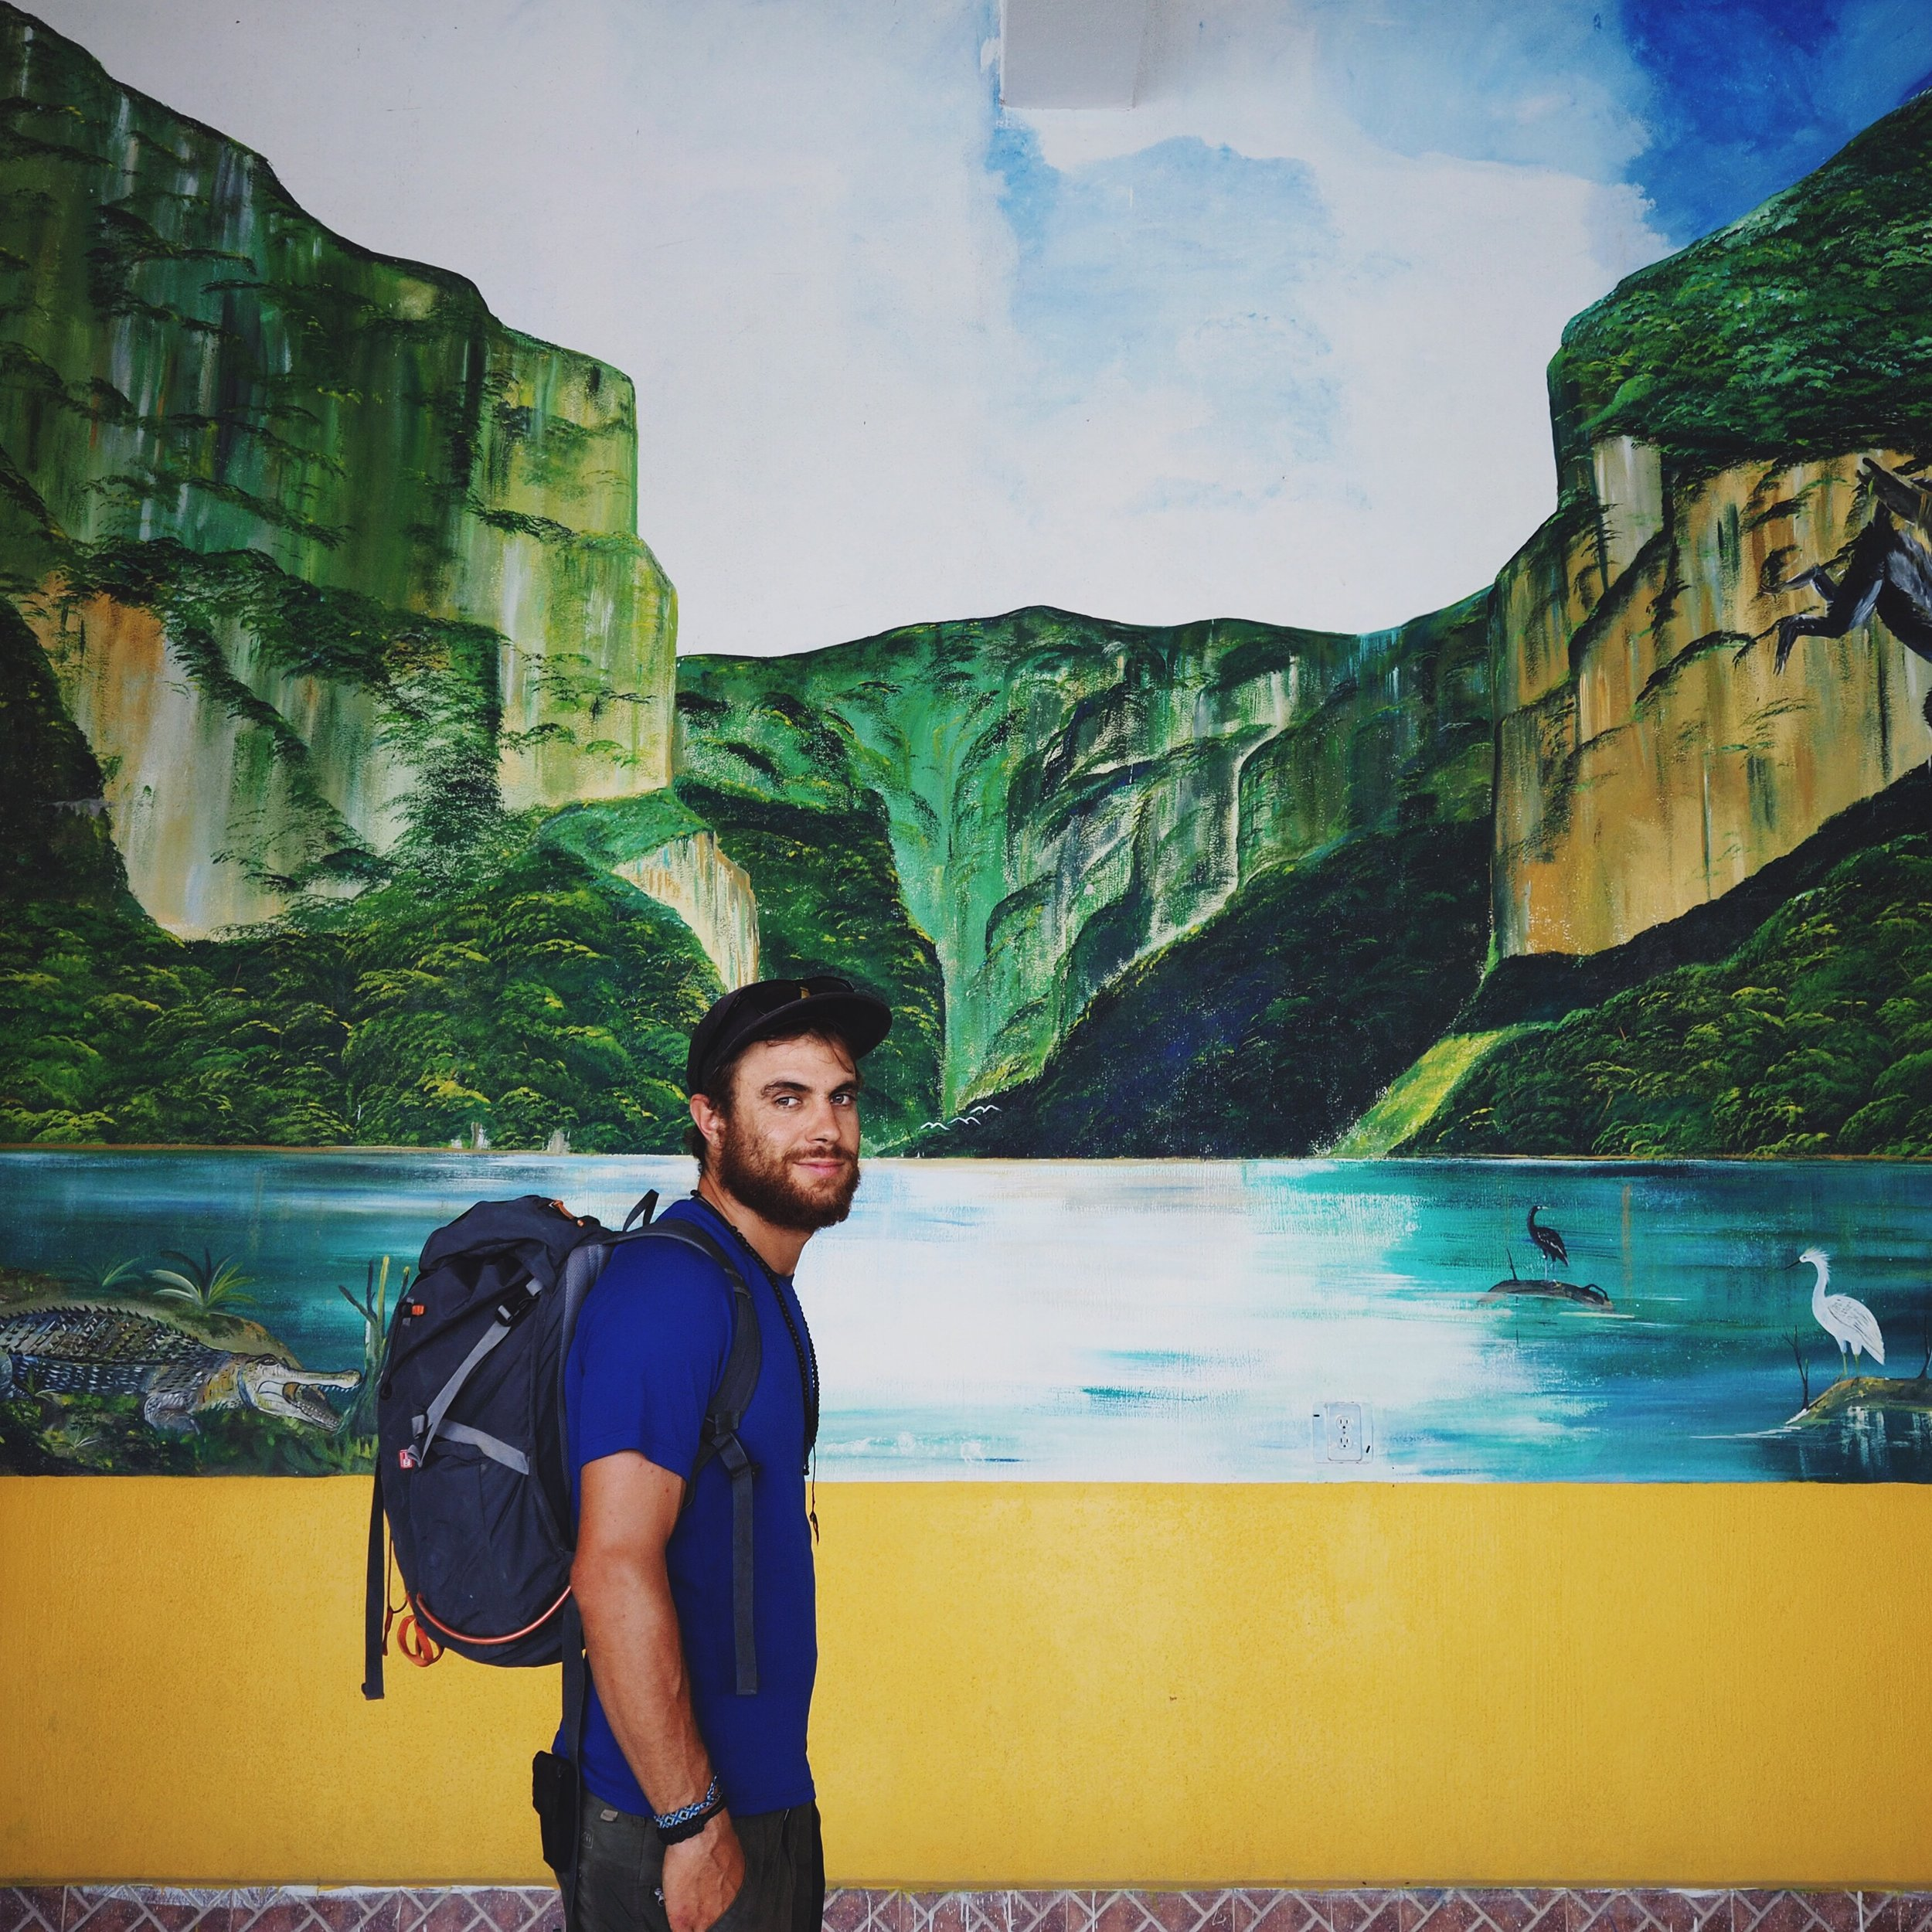 Mehedi posing in front of a painting of the iconic Cañon del Sumidero viewpoint